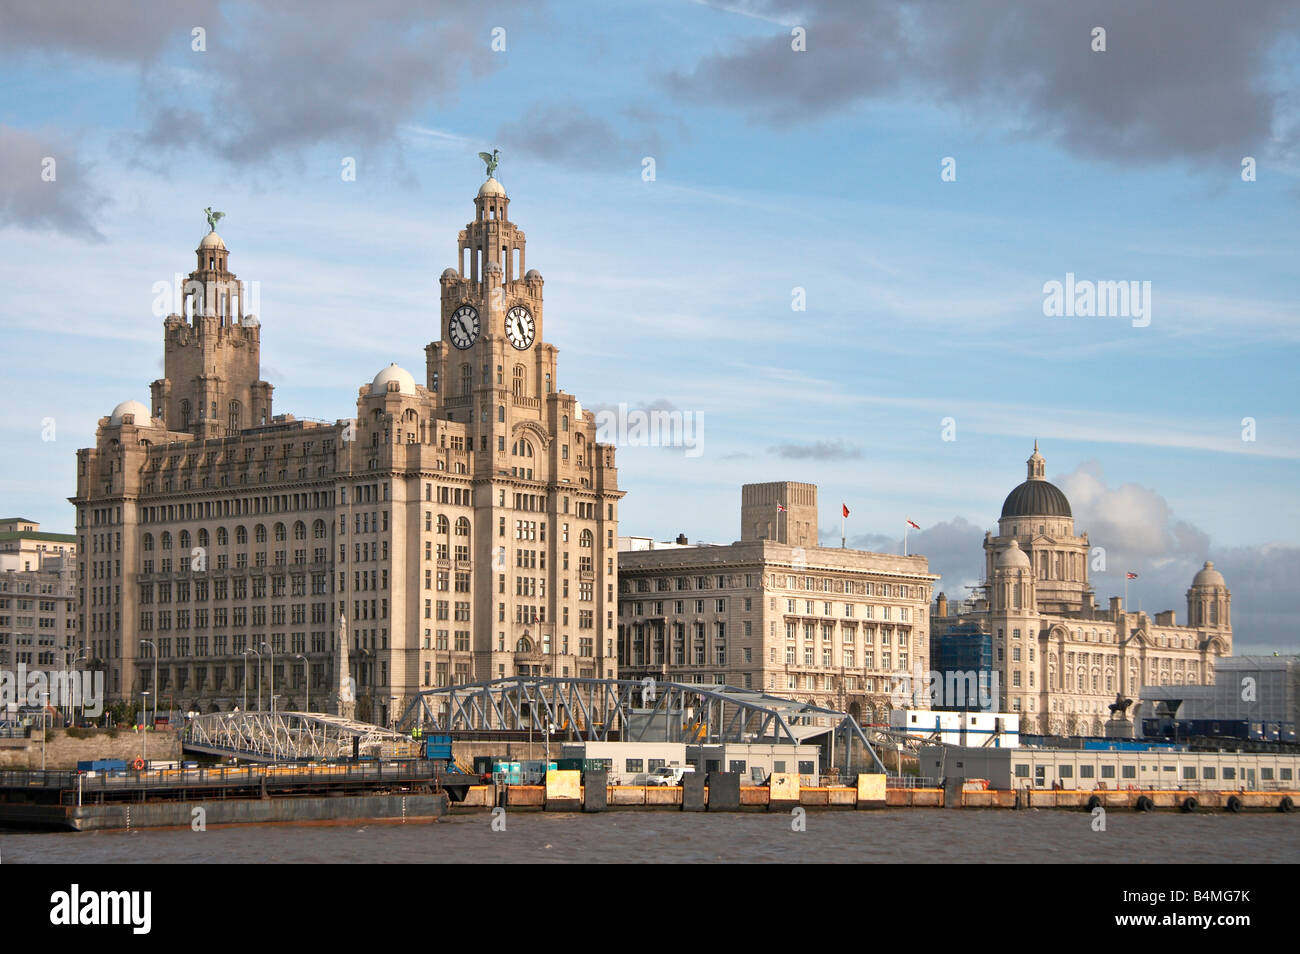 Royal Liver Buildings, Cunard Building and the Port of Liverpool Building, also known as 'The Three Graces'. - Stock Image